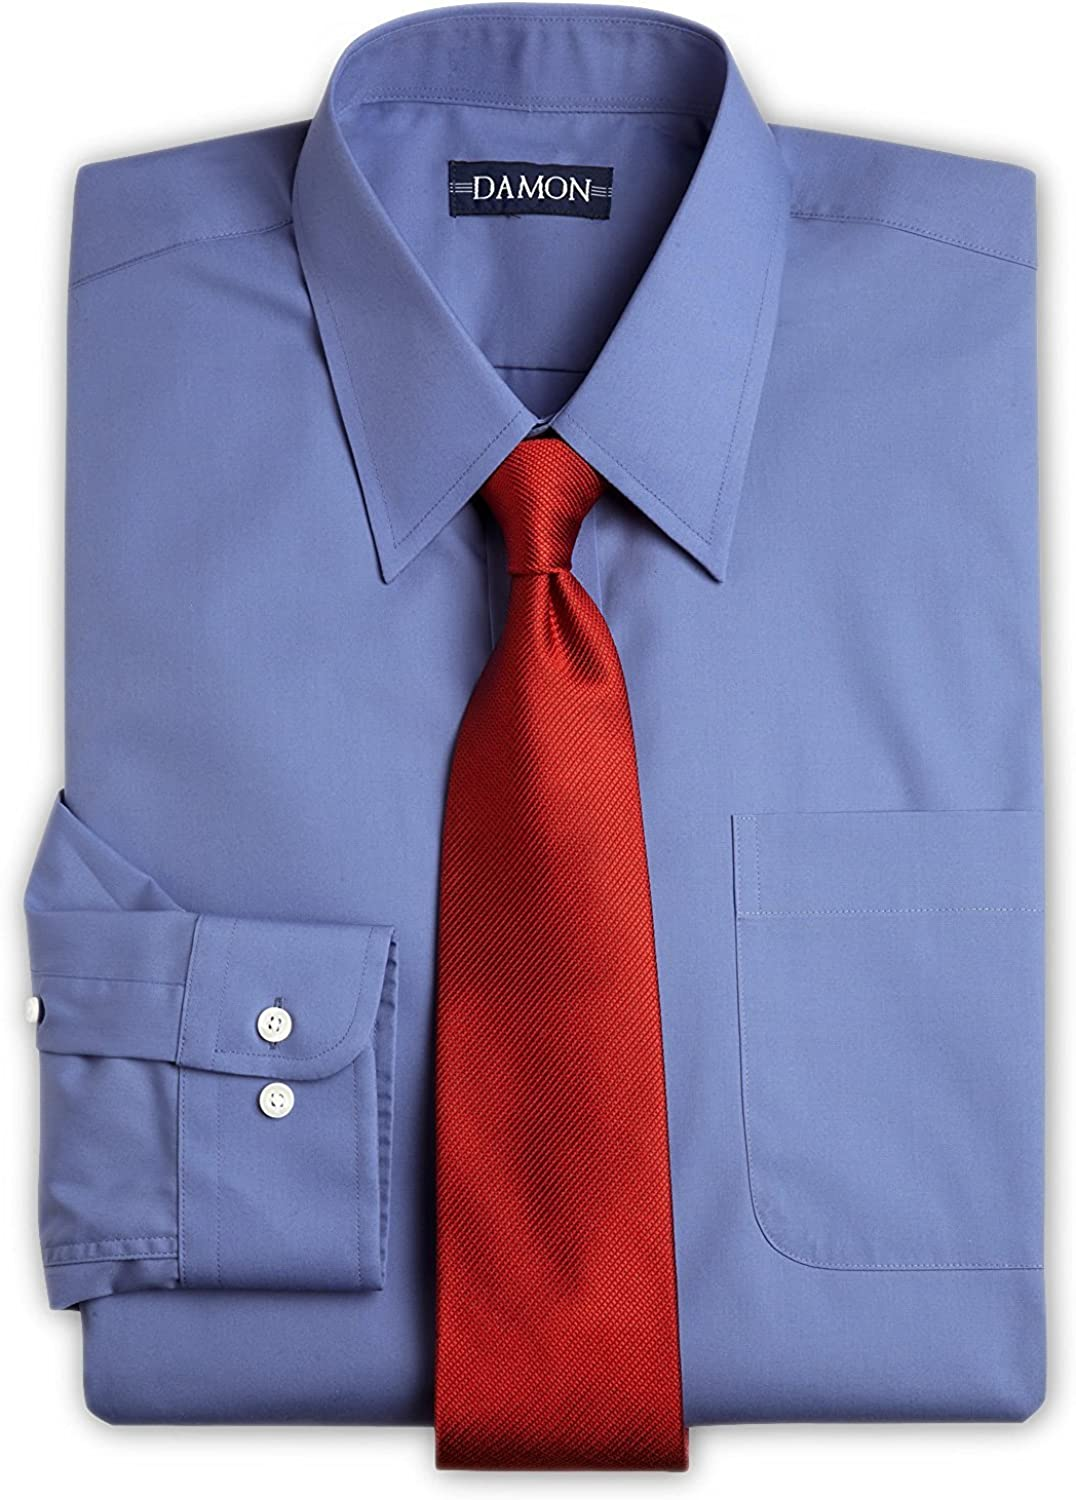 Enro Point Collar Solid Color Poplin Dress Shirt (French Blue, 17 34/35)